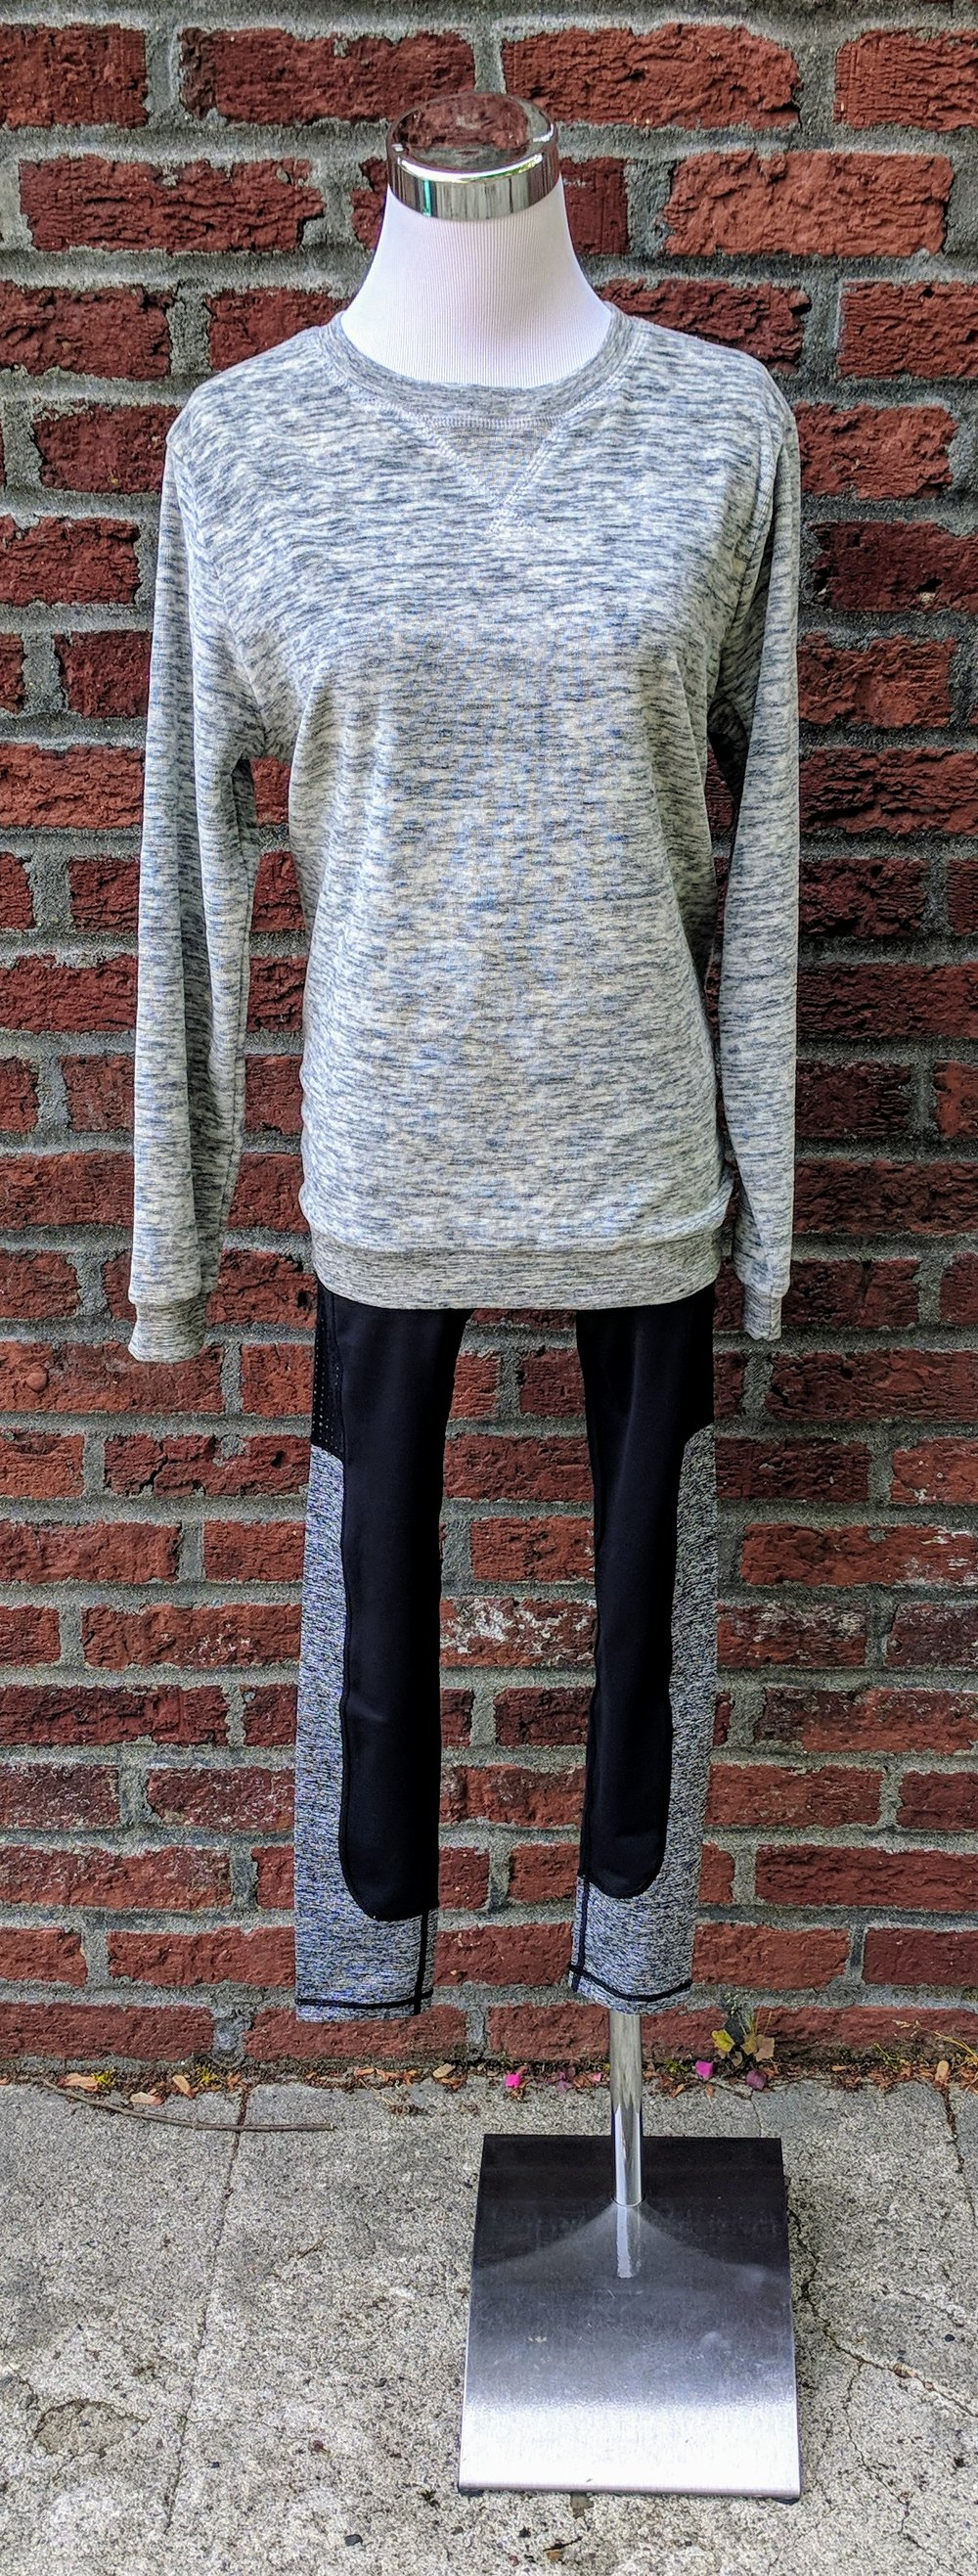 Grey cozy long sleeve sweater paired with black leggings with cut out details on legs.